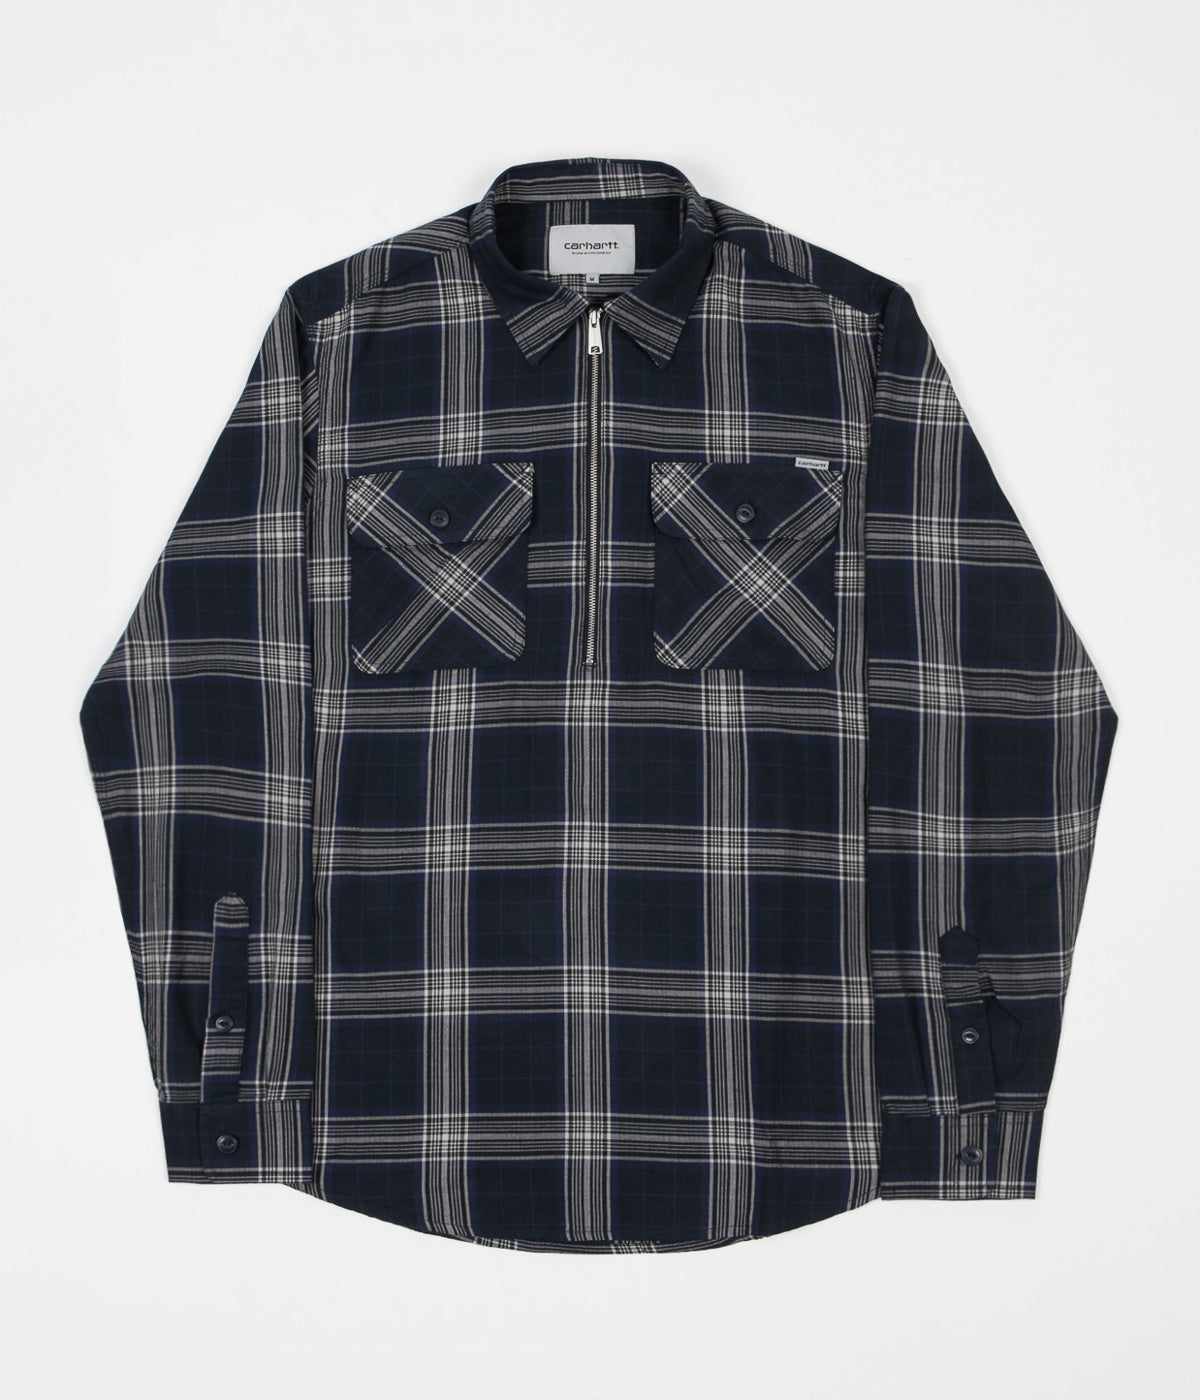 Carhartt Portland Long Sleeve Shirt - Portland Check / Navy